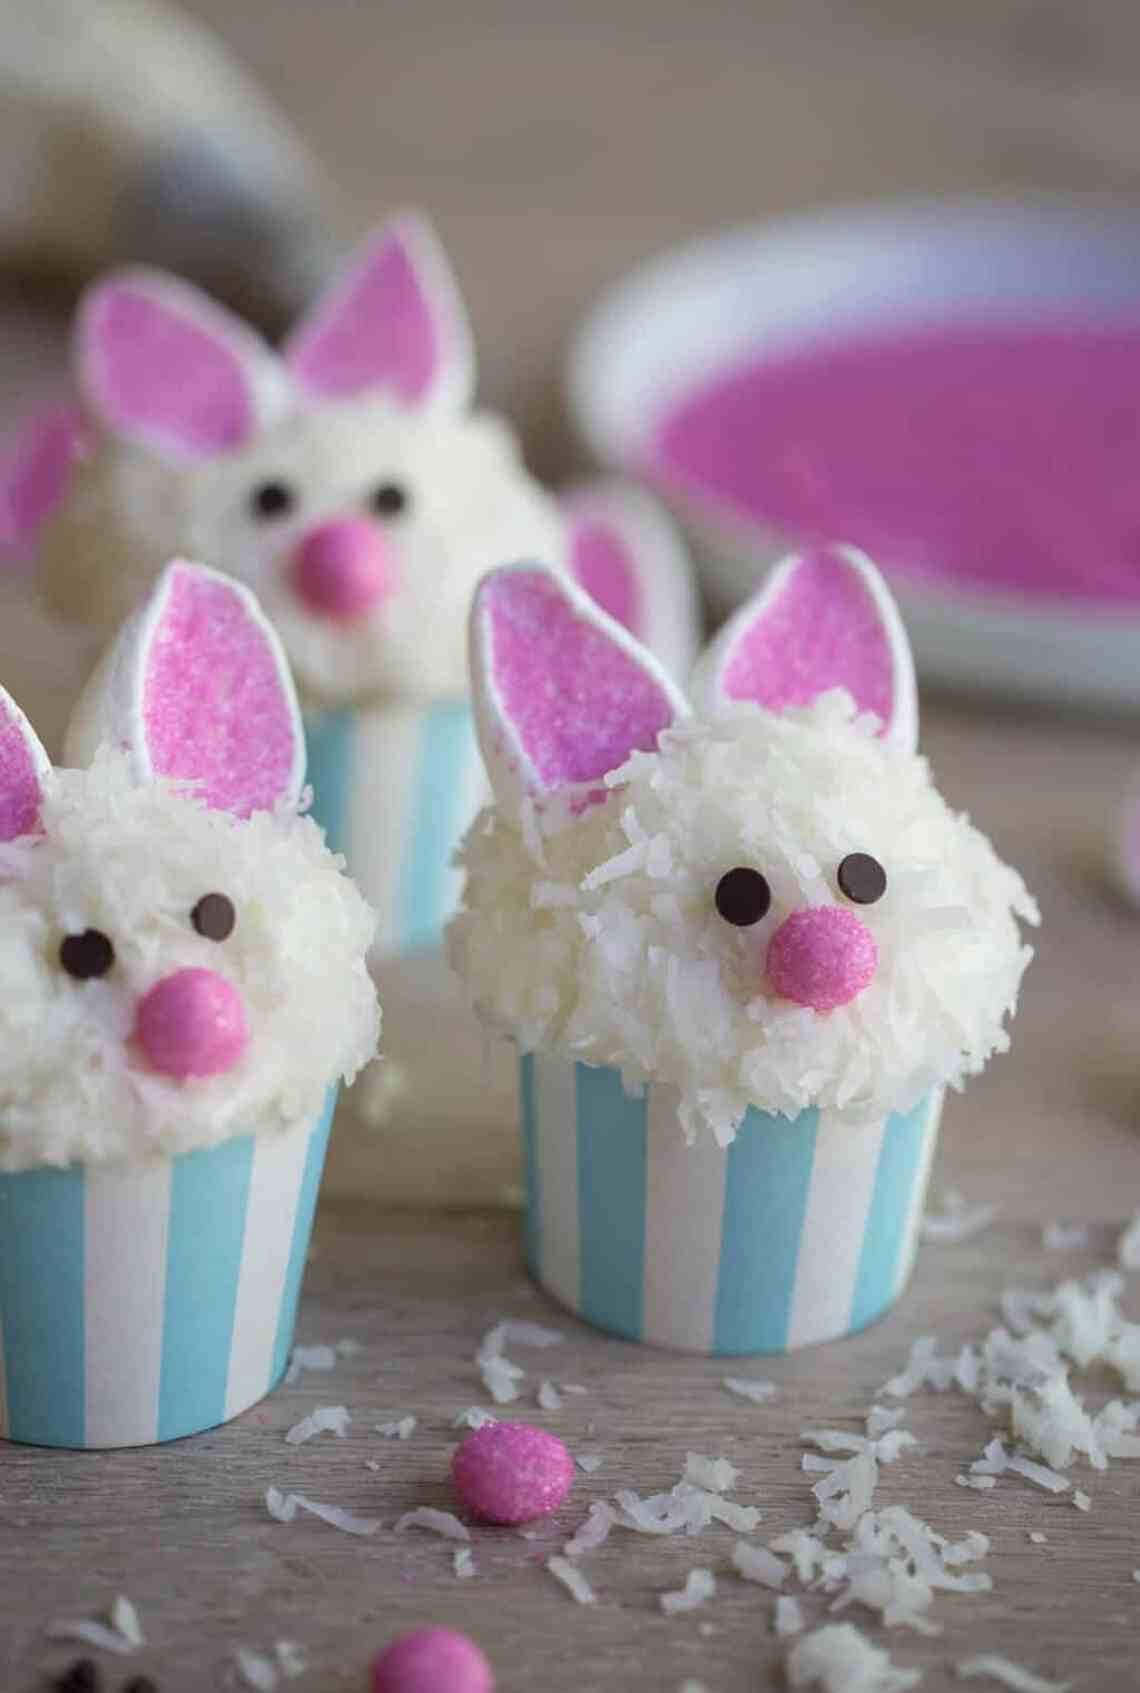 Bunny Cupcakes - Cute Easter Dessert Recipe